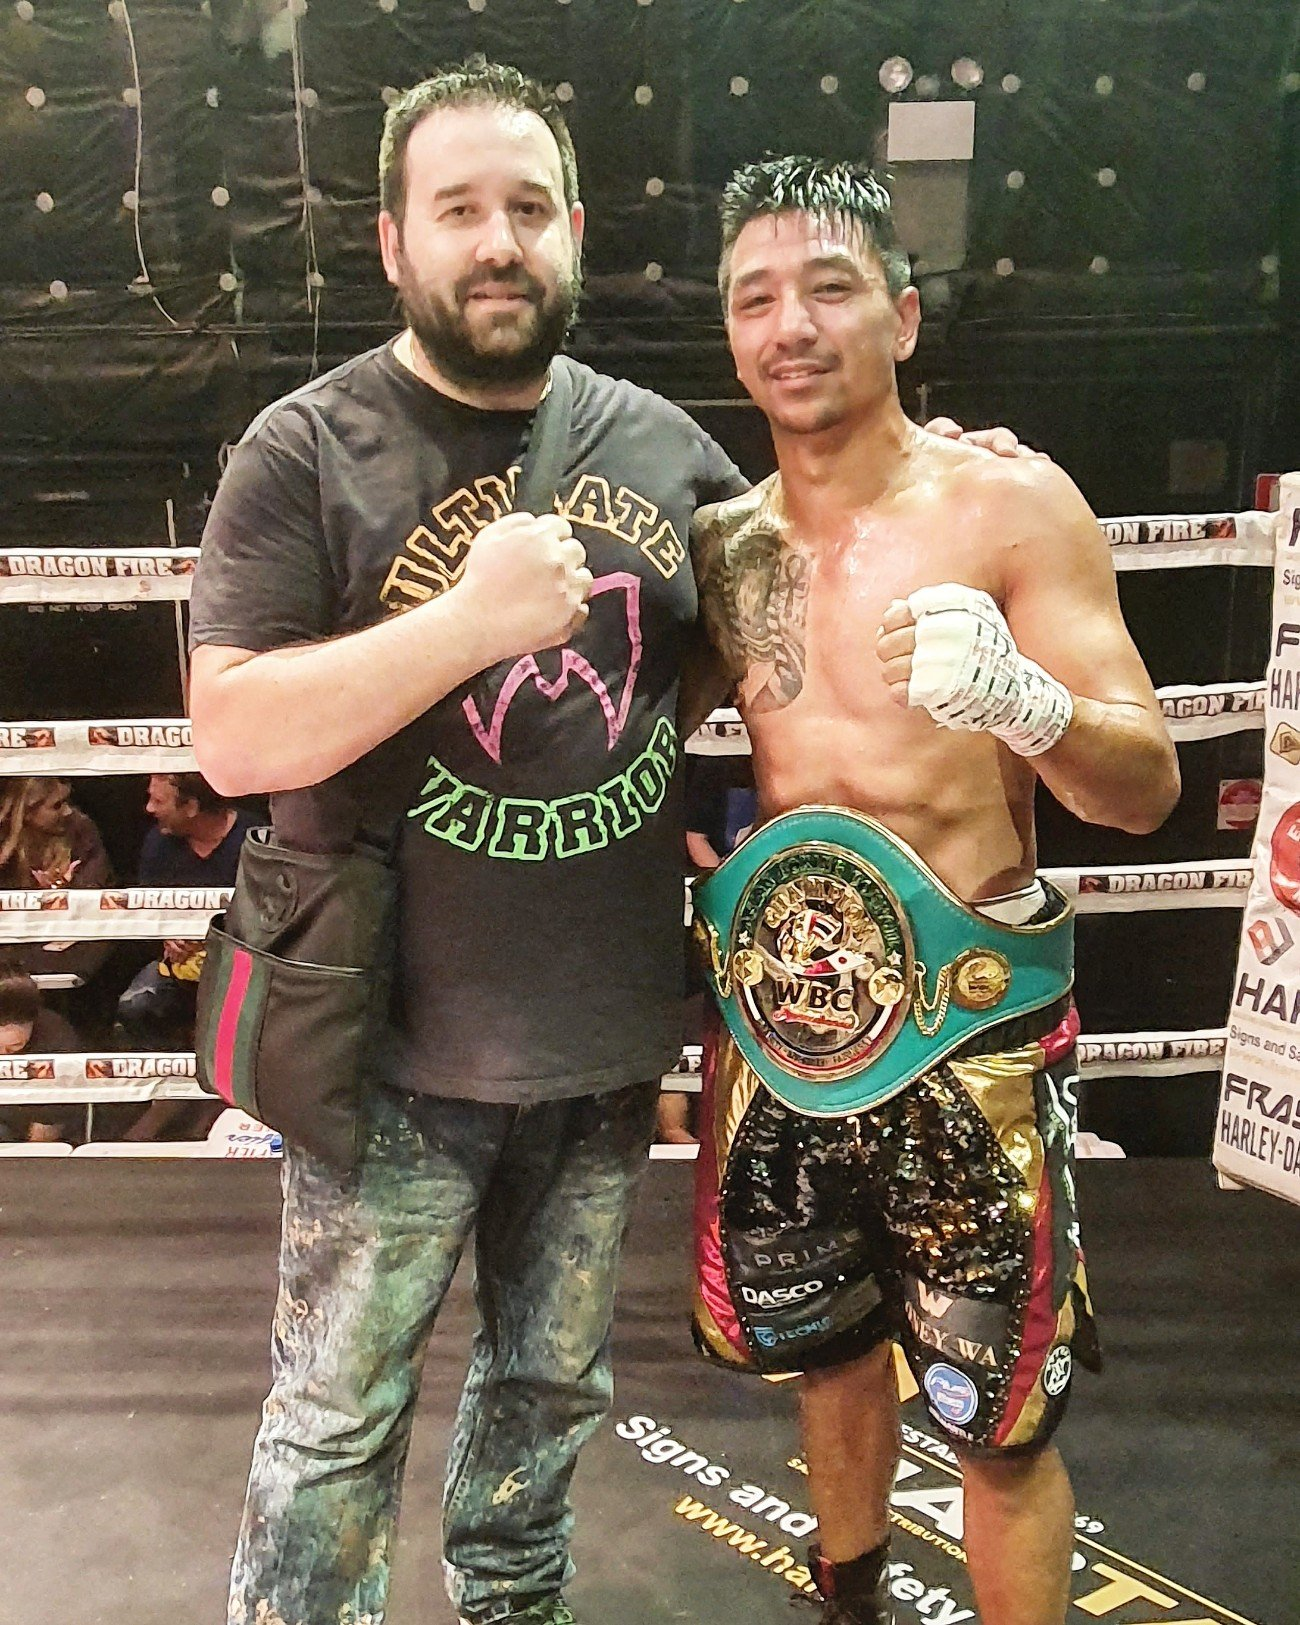 Steve Gago - Steve Gago has followed up from his WBC Australasian title victory in his hometown of Perth by resigning a long term deal with Tony Tolj's Dragon Fire Boxing.